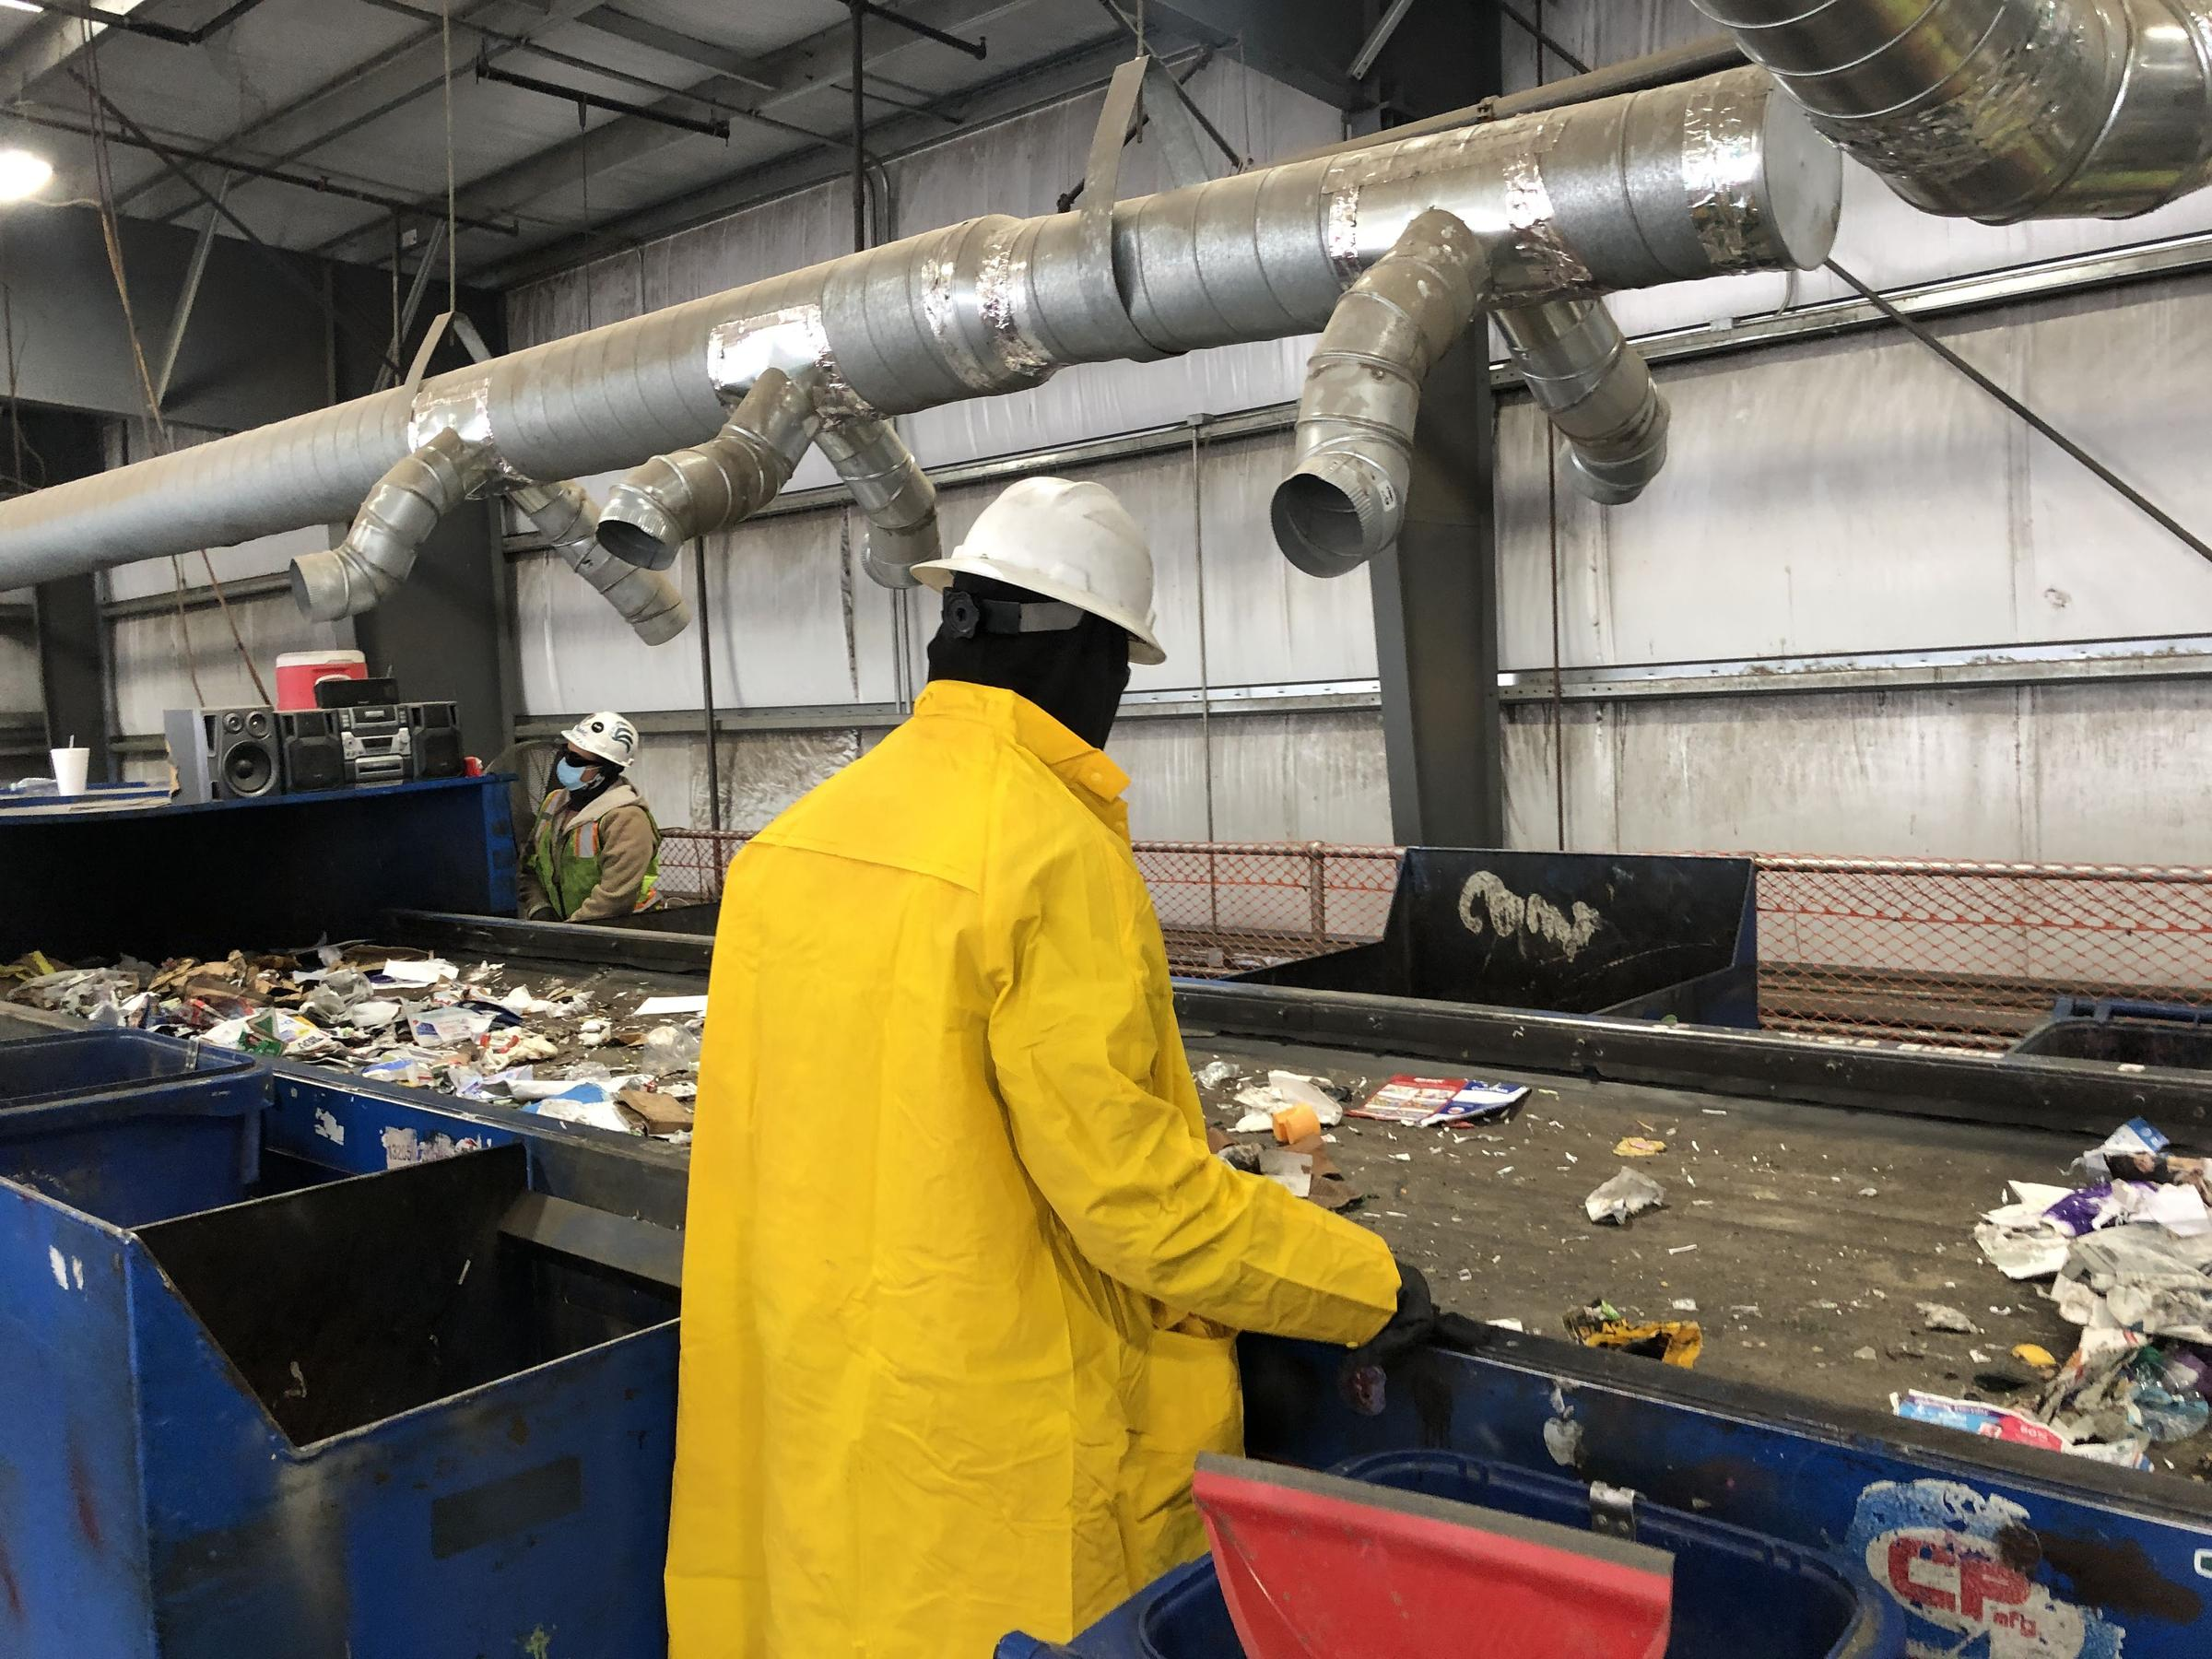 To Sort Up To 35 Tons Of Recyclables A Day This Bakersfield Facility Relies On A Unique Labor Force Valley Public Radio